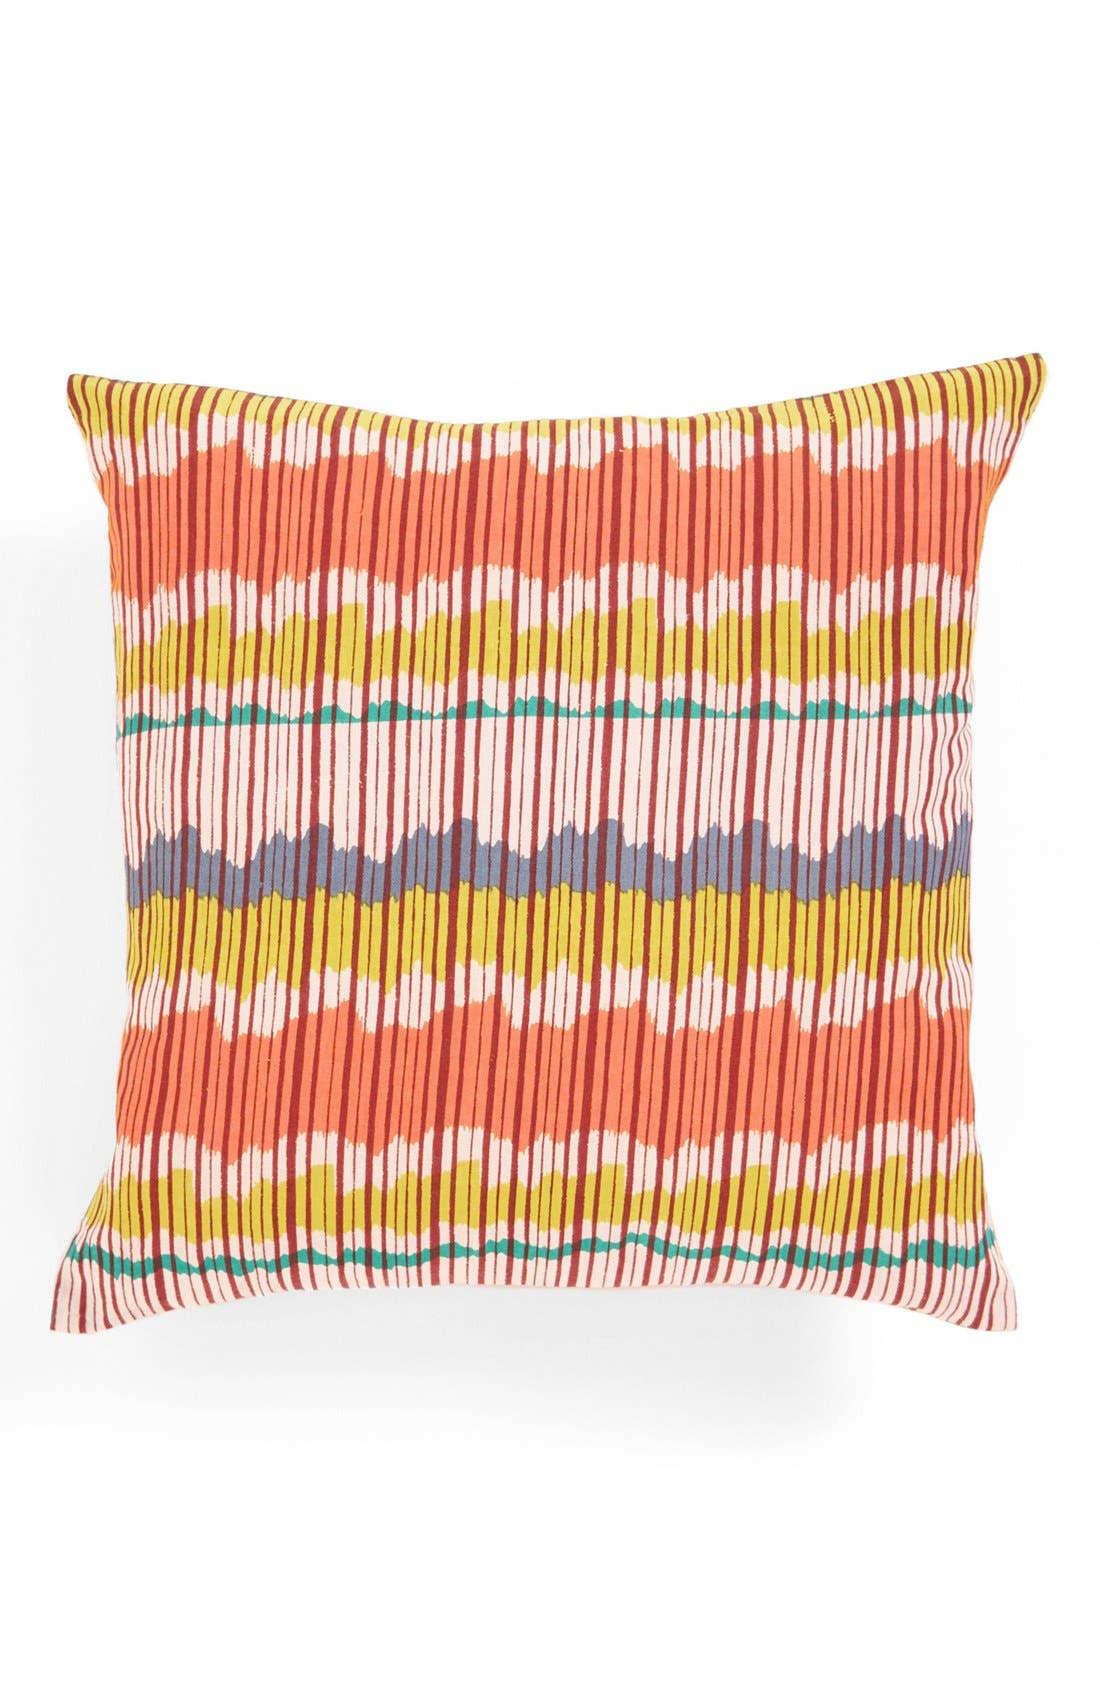 Main Image - Rizzy Home 'Felicity' Pillow